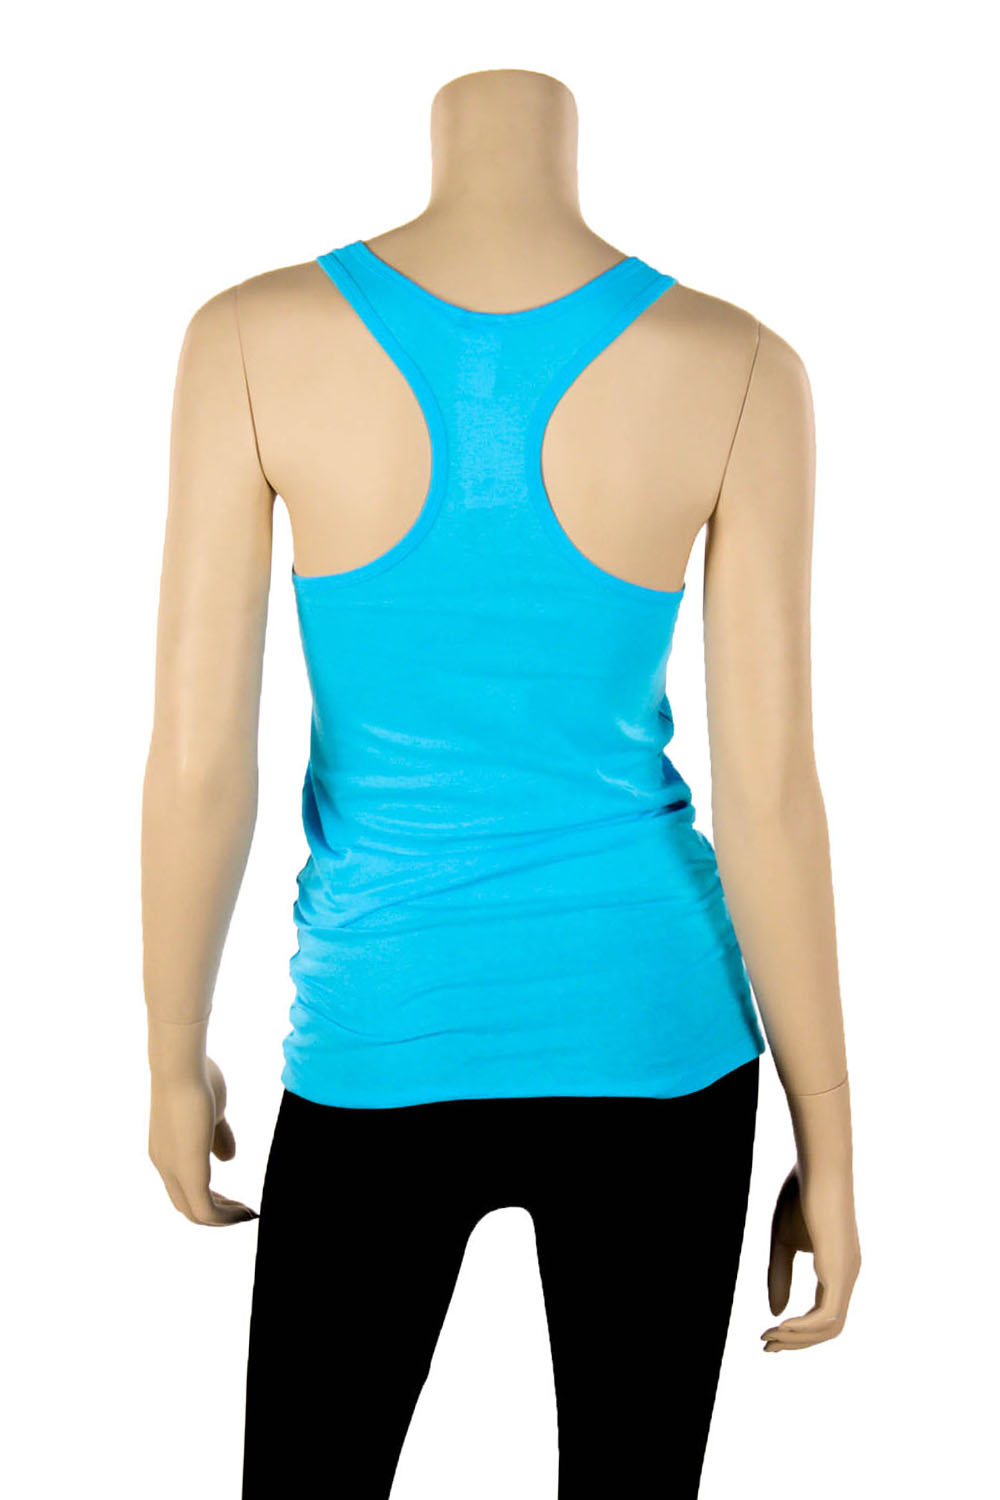 Design custom made racerback t-shirts online. Free shipping, bulk discounts and no minimums or setups for custom made racerback tees. Free design templates. Over 10 million customer designs since